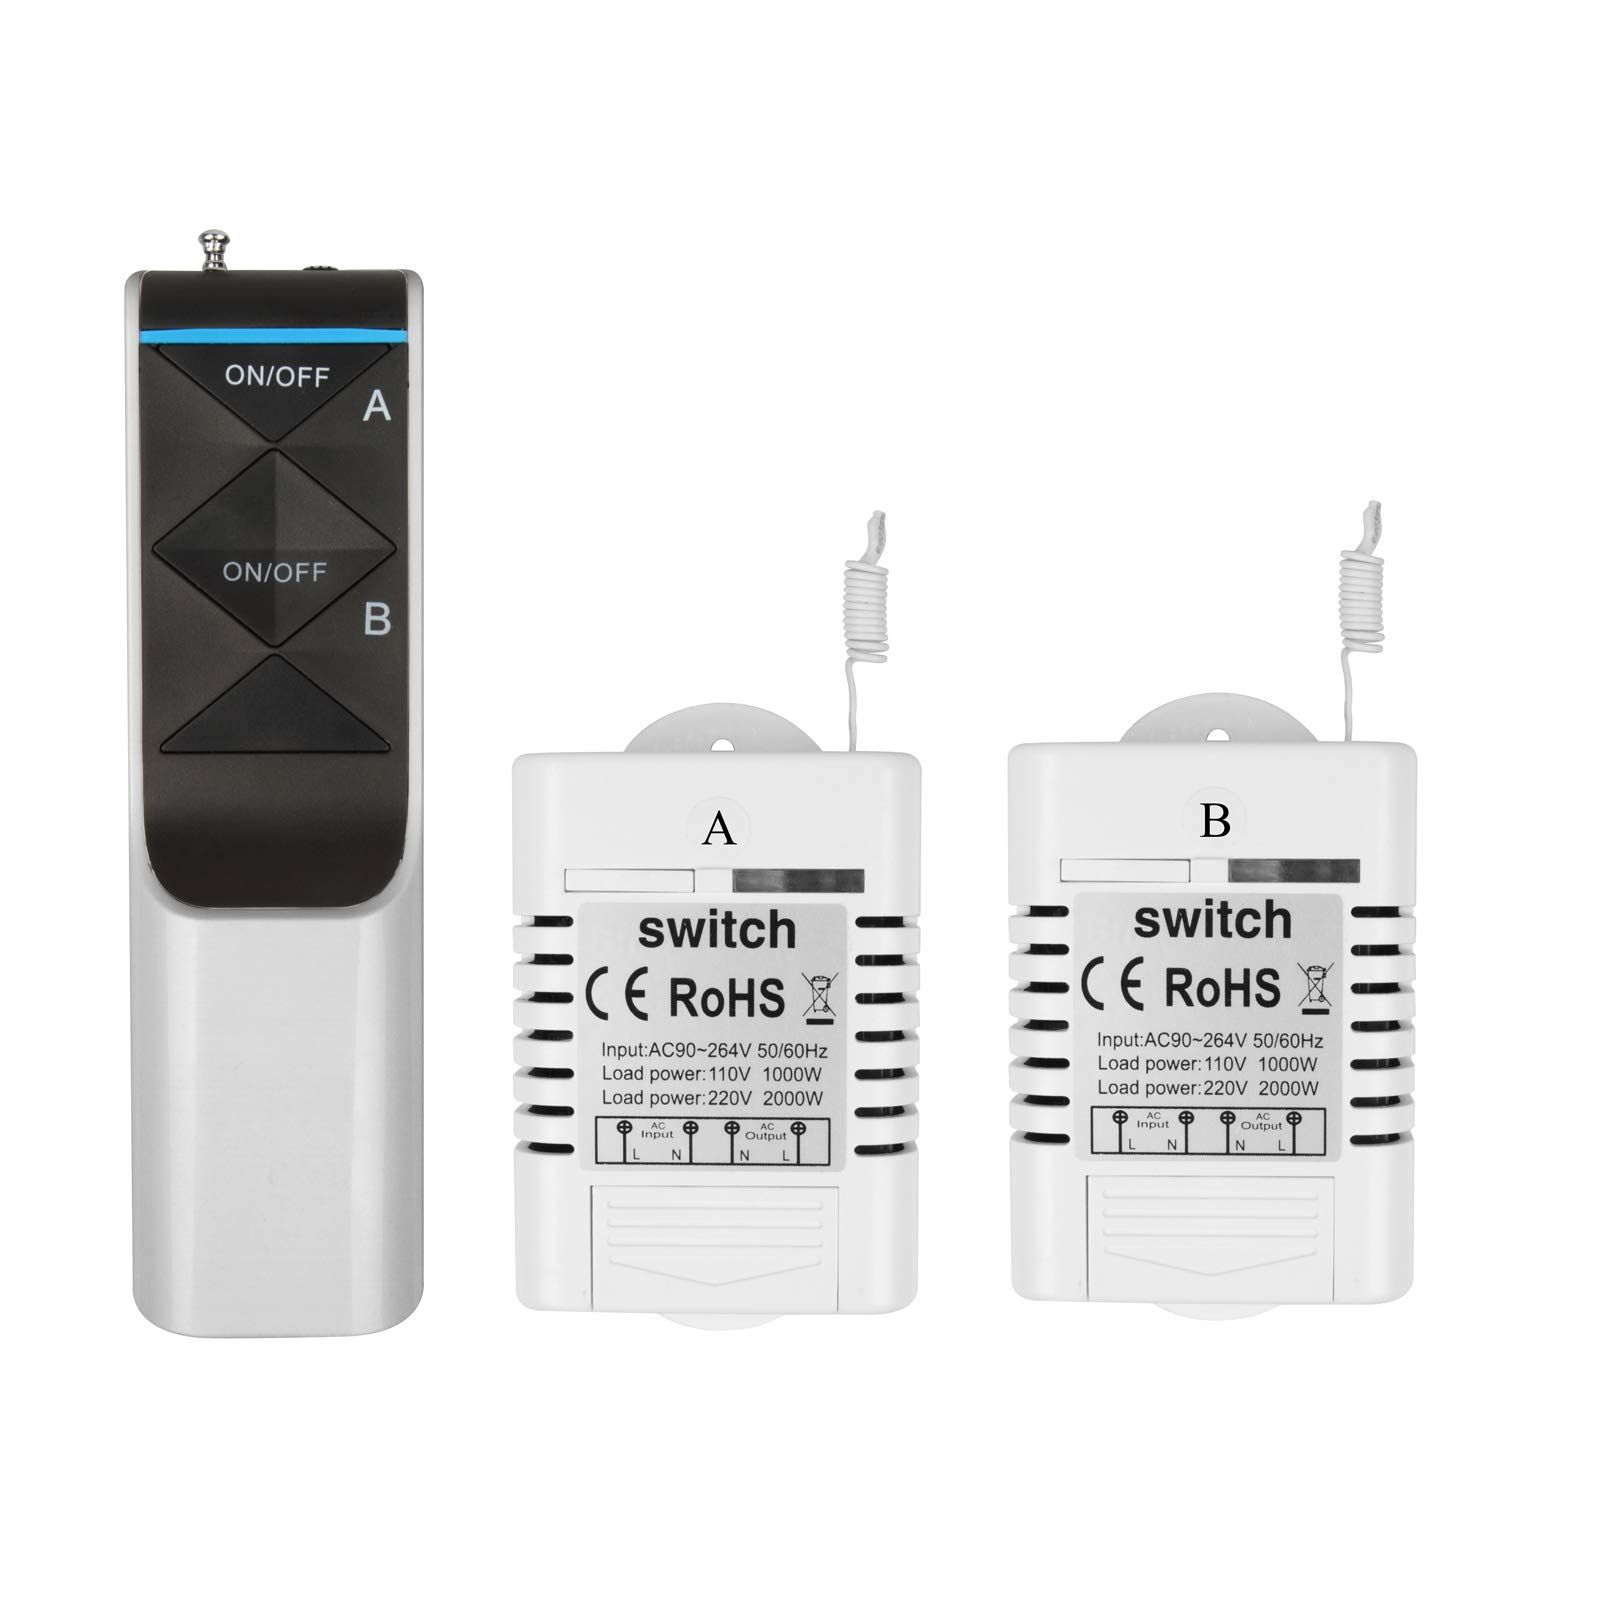 hight resolution of heneng wireless light switch remote controlled no wiring no battery outdoor 1300 ft indoors 230 ft